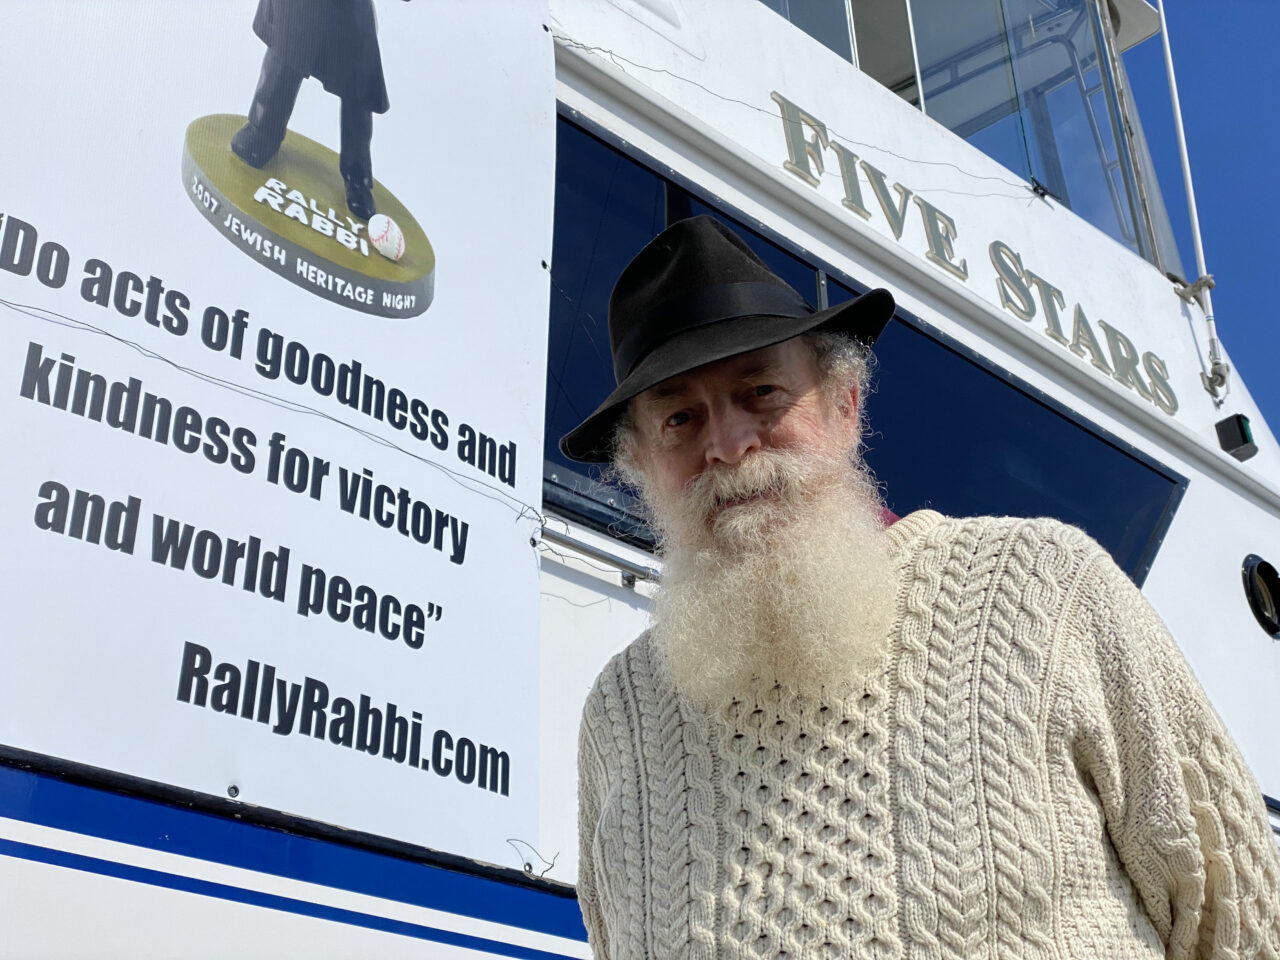 """A man with a long beard, black hat and cableknit sweater stands on the deck of a yacht with a """"Rally Rabbi"""" sign behind him"""